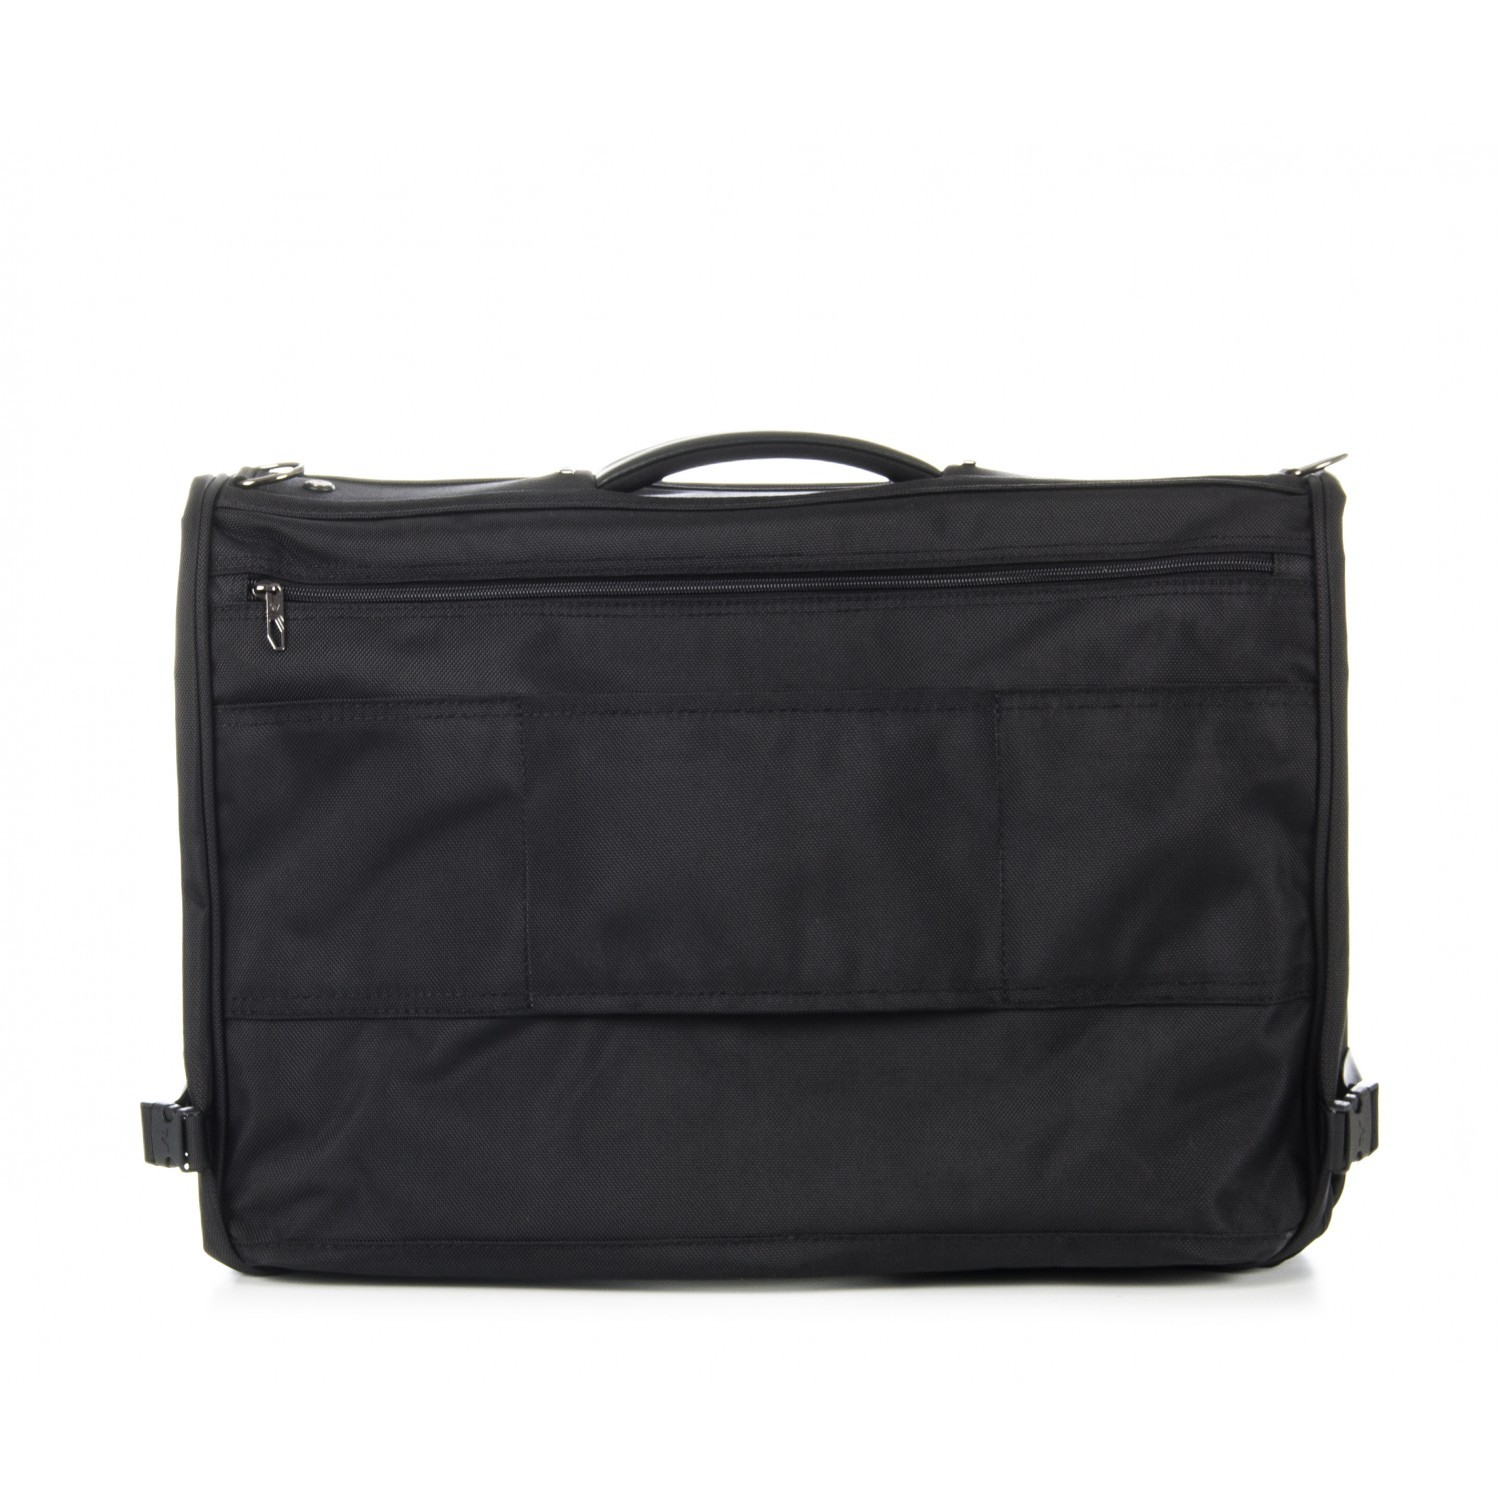 Портплед Roncato BIZ 2.0 GARMENT BAG